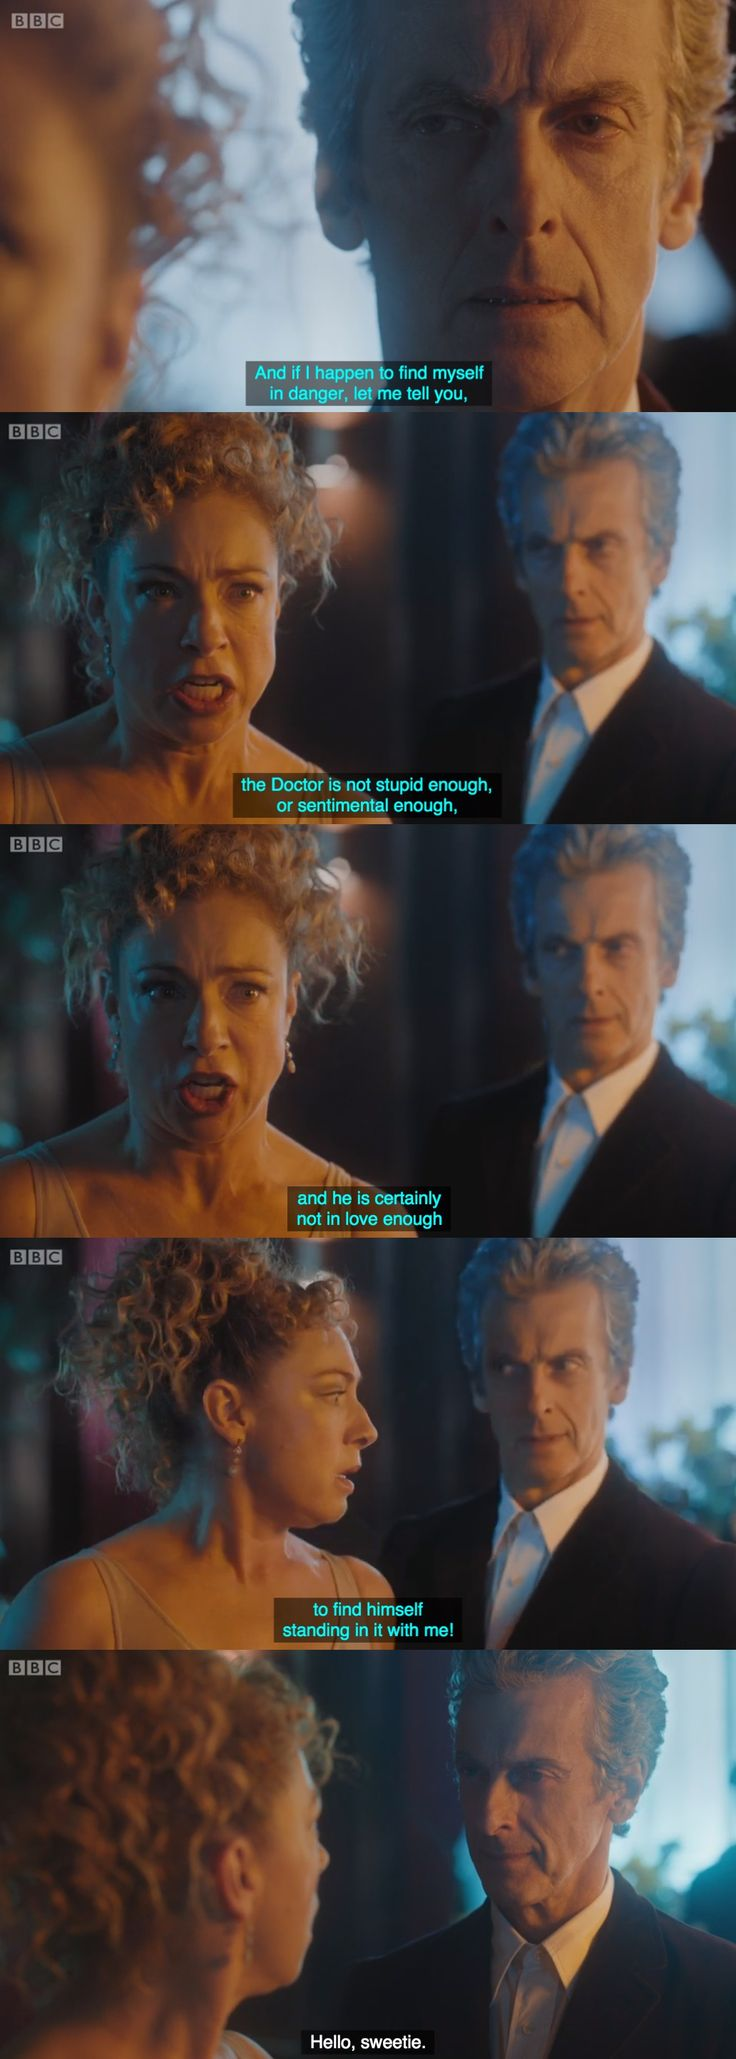 The Husbands of River Song - Doctor Who Christmas Special 2015 ❤️❤️❤️ this scene broke me